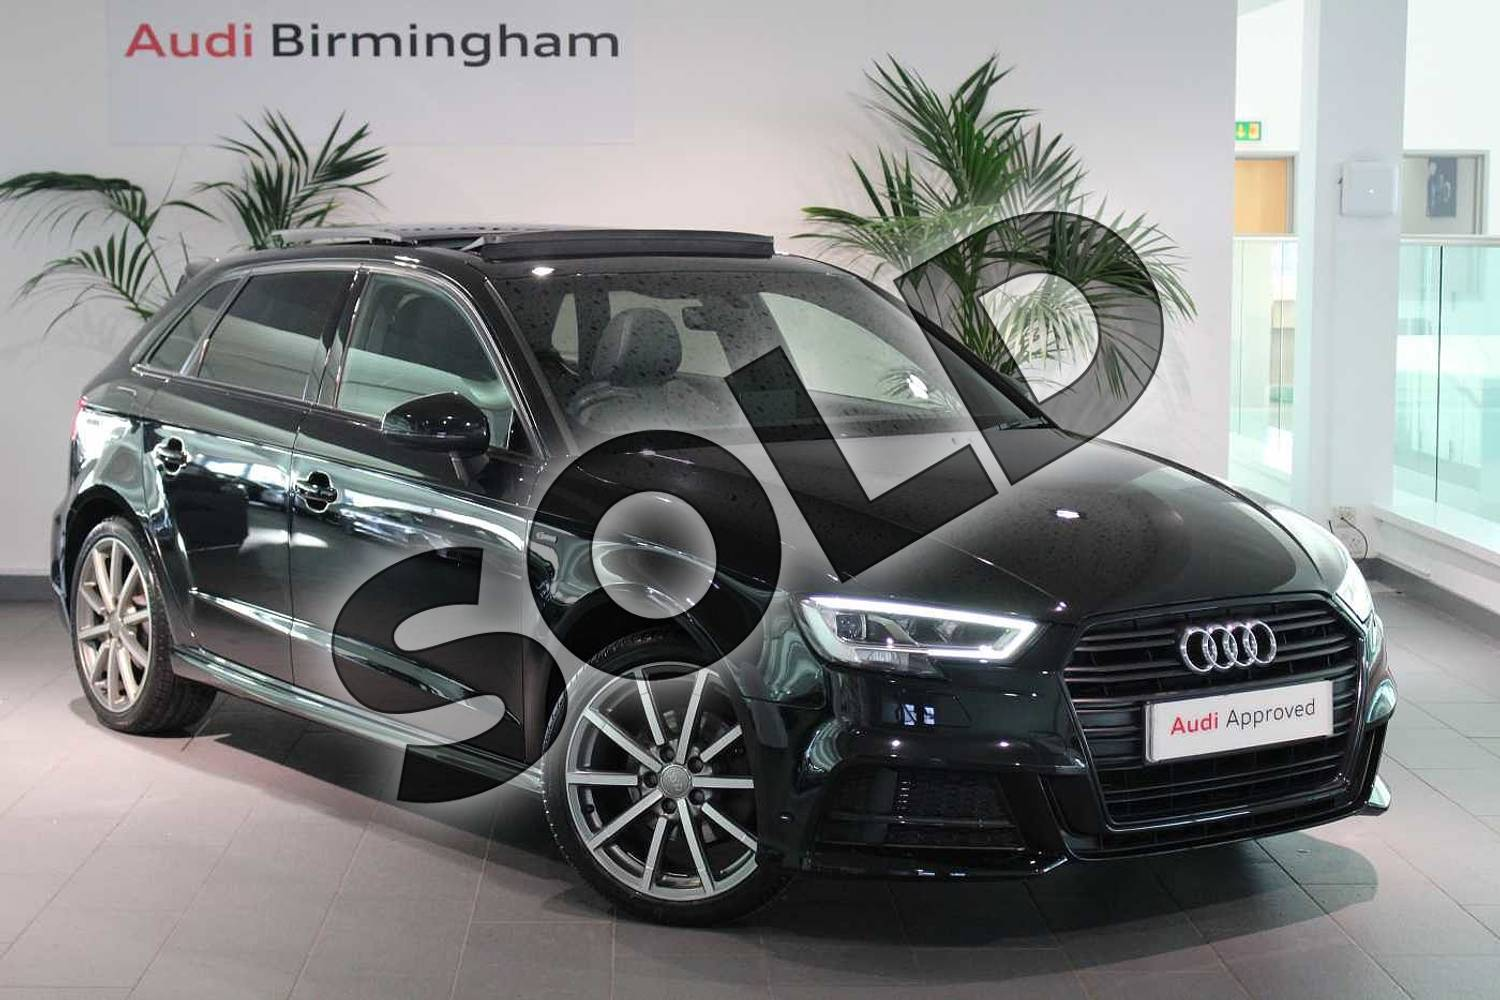 2017 Audi A3 Sportback Special Editions 1.4 TFSI Black Edition 5dr in Myth Black Metallic at Worcester Audi